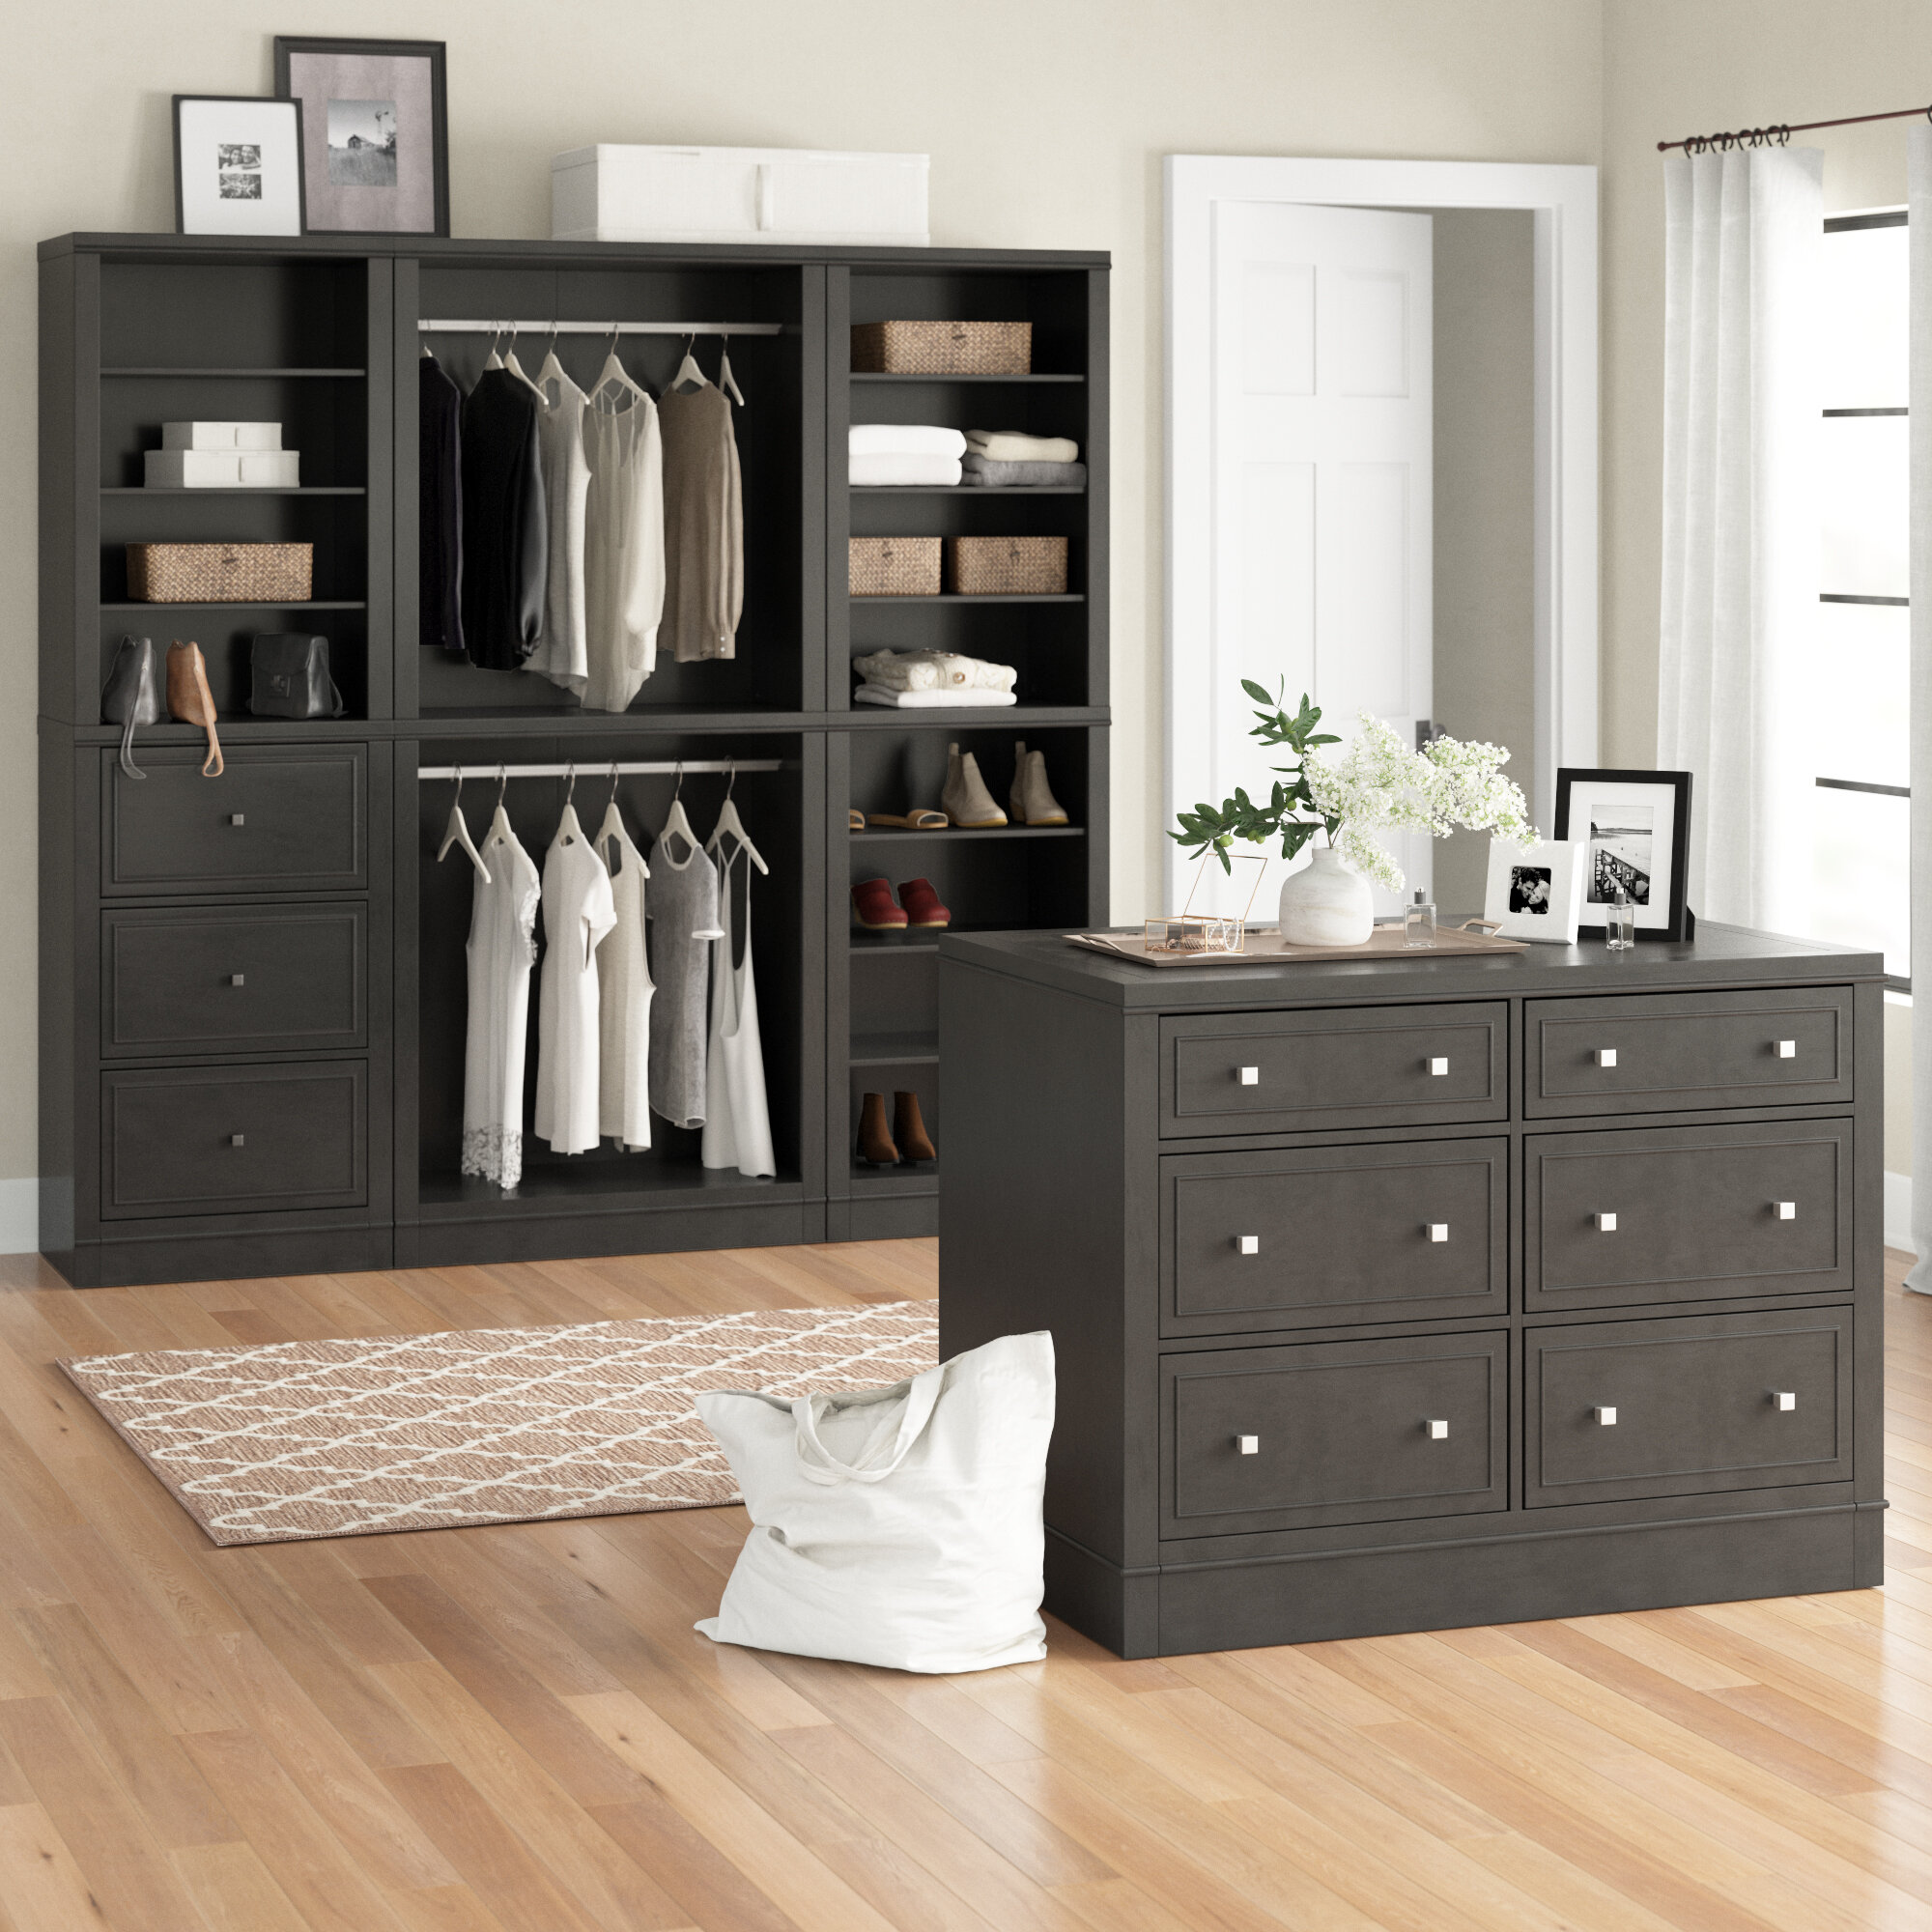 "Romsey 11"" W 11 Piece Closet Storage Units"